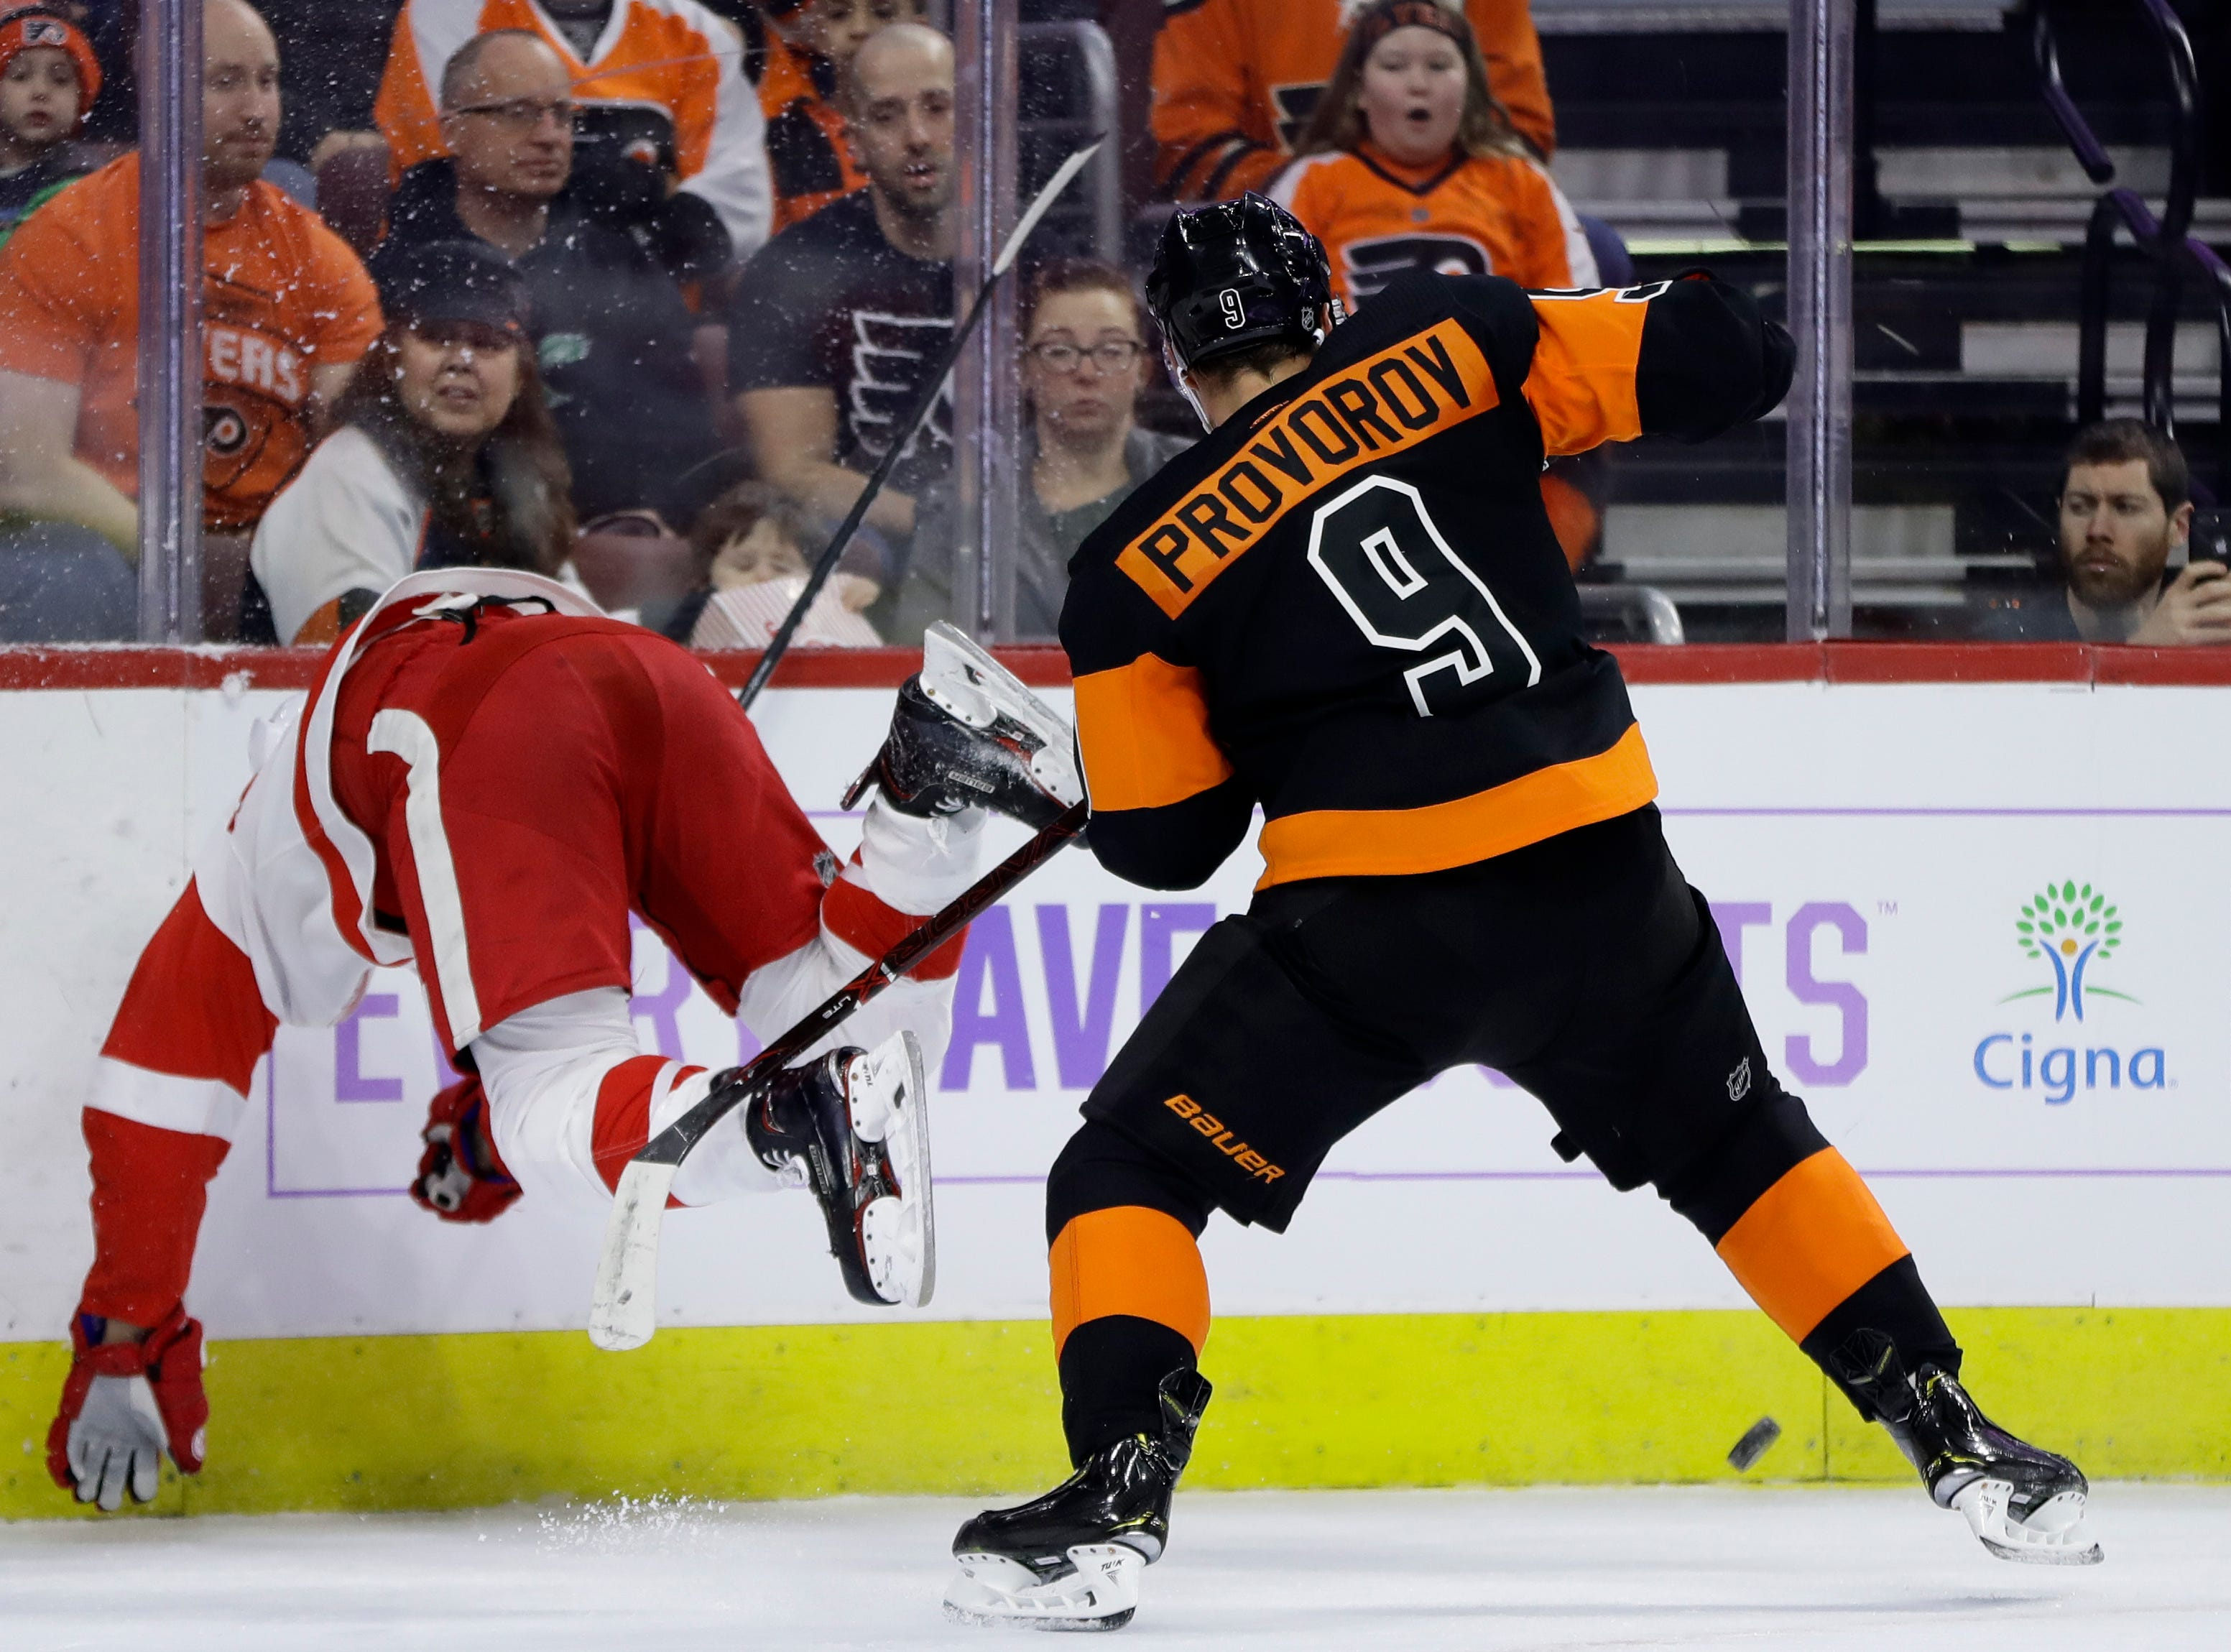 Detroit Red Wings' Justin Abdelkader, left, goes flying after trying to check Philadelphia Flyers' Ivan Provorov during the first period of an NHL hockey game, Saturday, Feb. 16, 2019, in Philadelphia. (AP Photo/Matt Slocum)